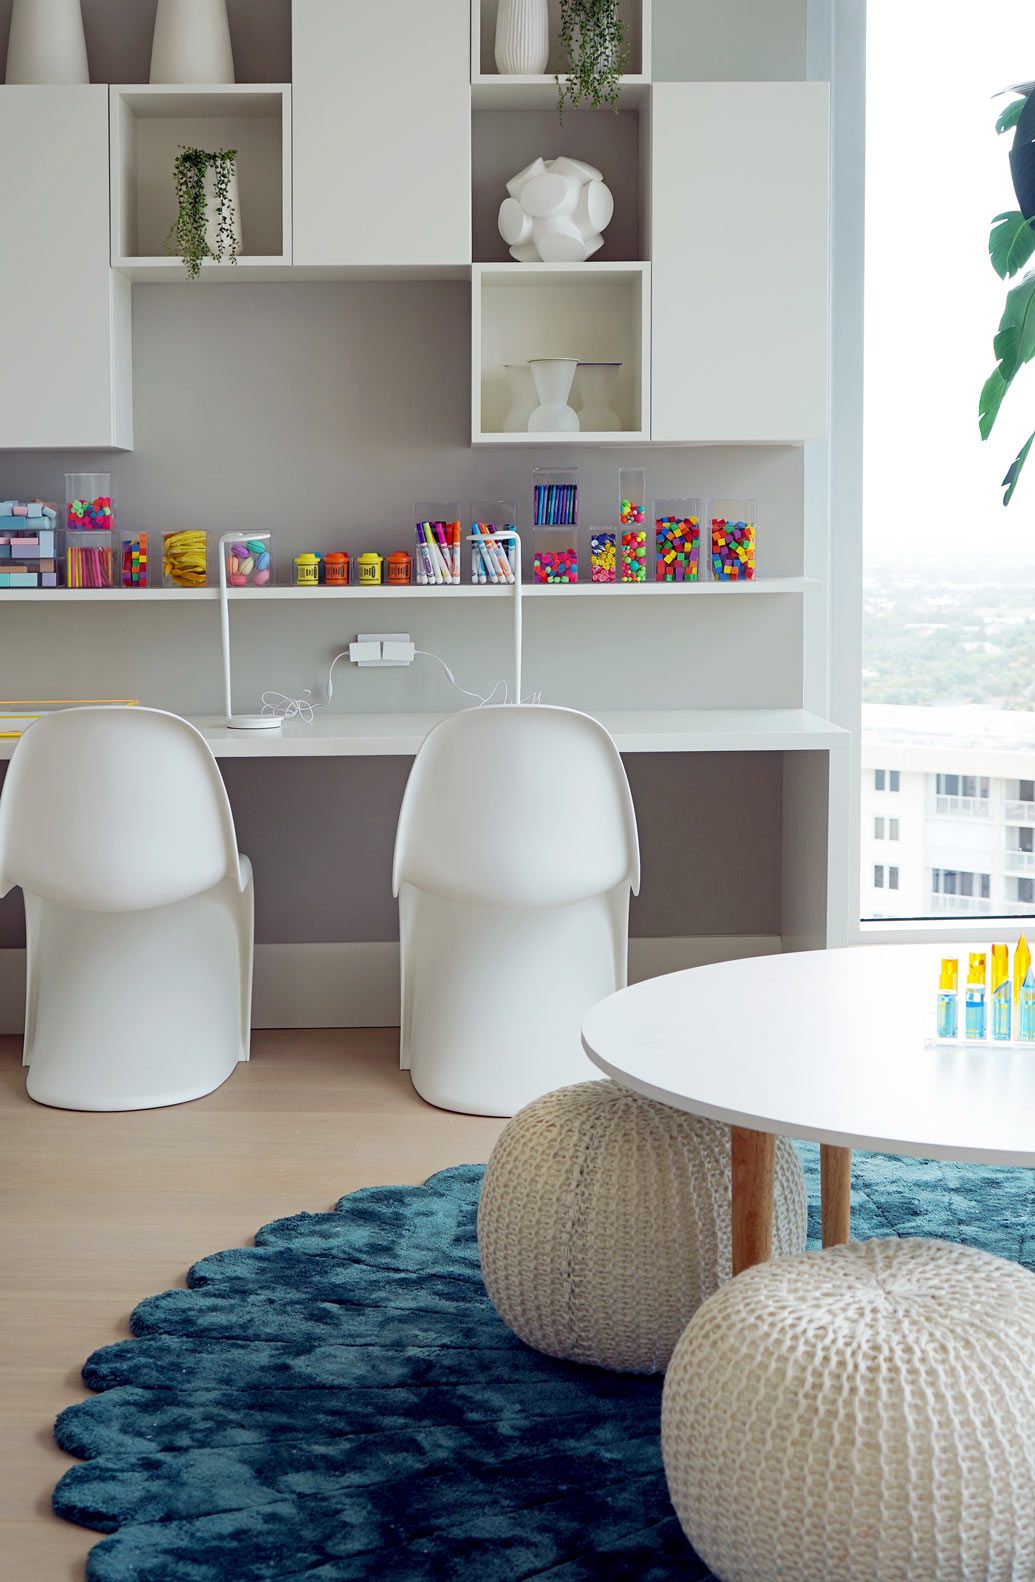 Multifunctional Room Ideas: Family Room and Playroom